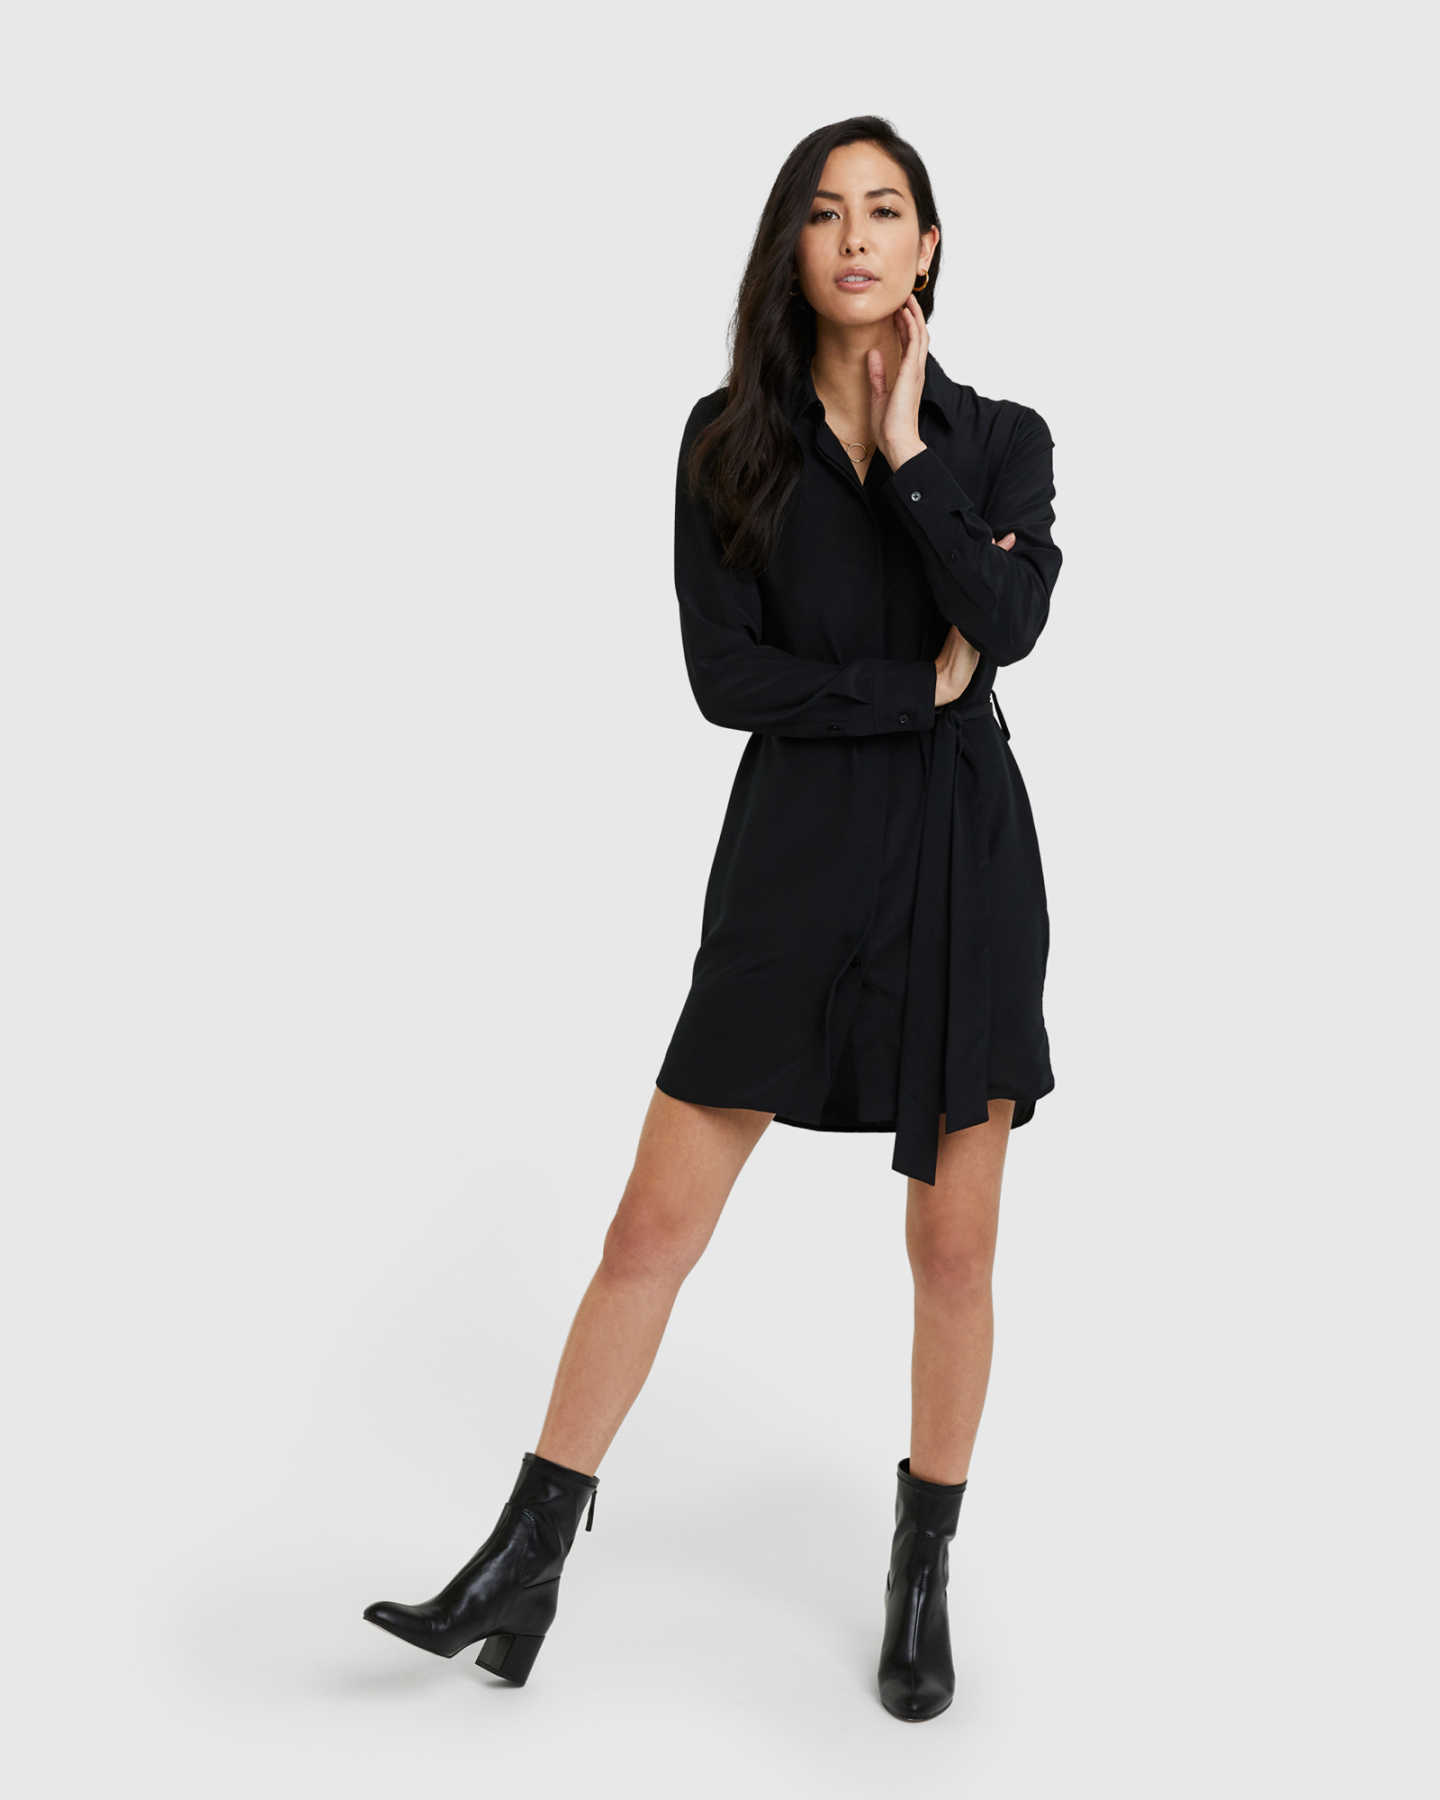 You May Also Like - Washable Stretch Silk Shirt Dress - Black